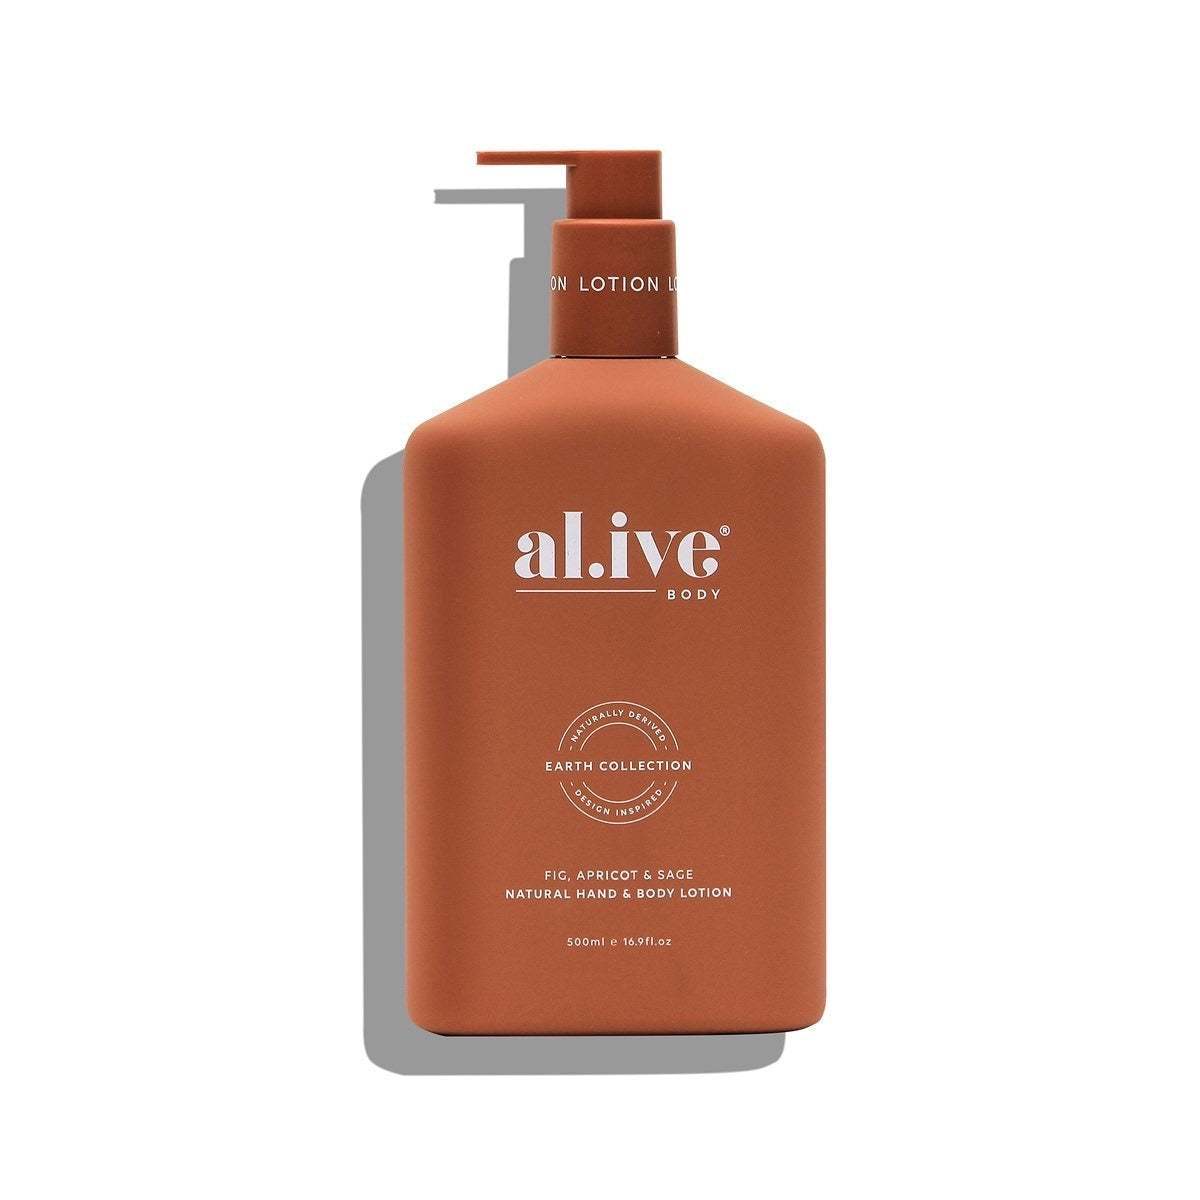 Fig, Apricot & Sage Hand & Body Lotion, 500ml Pump bottle